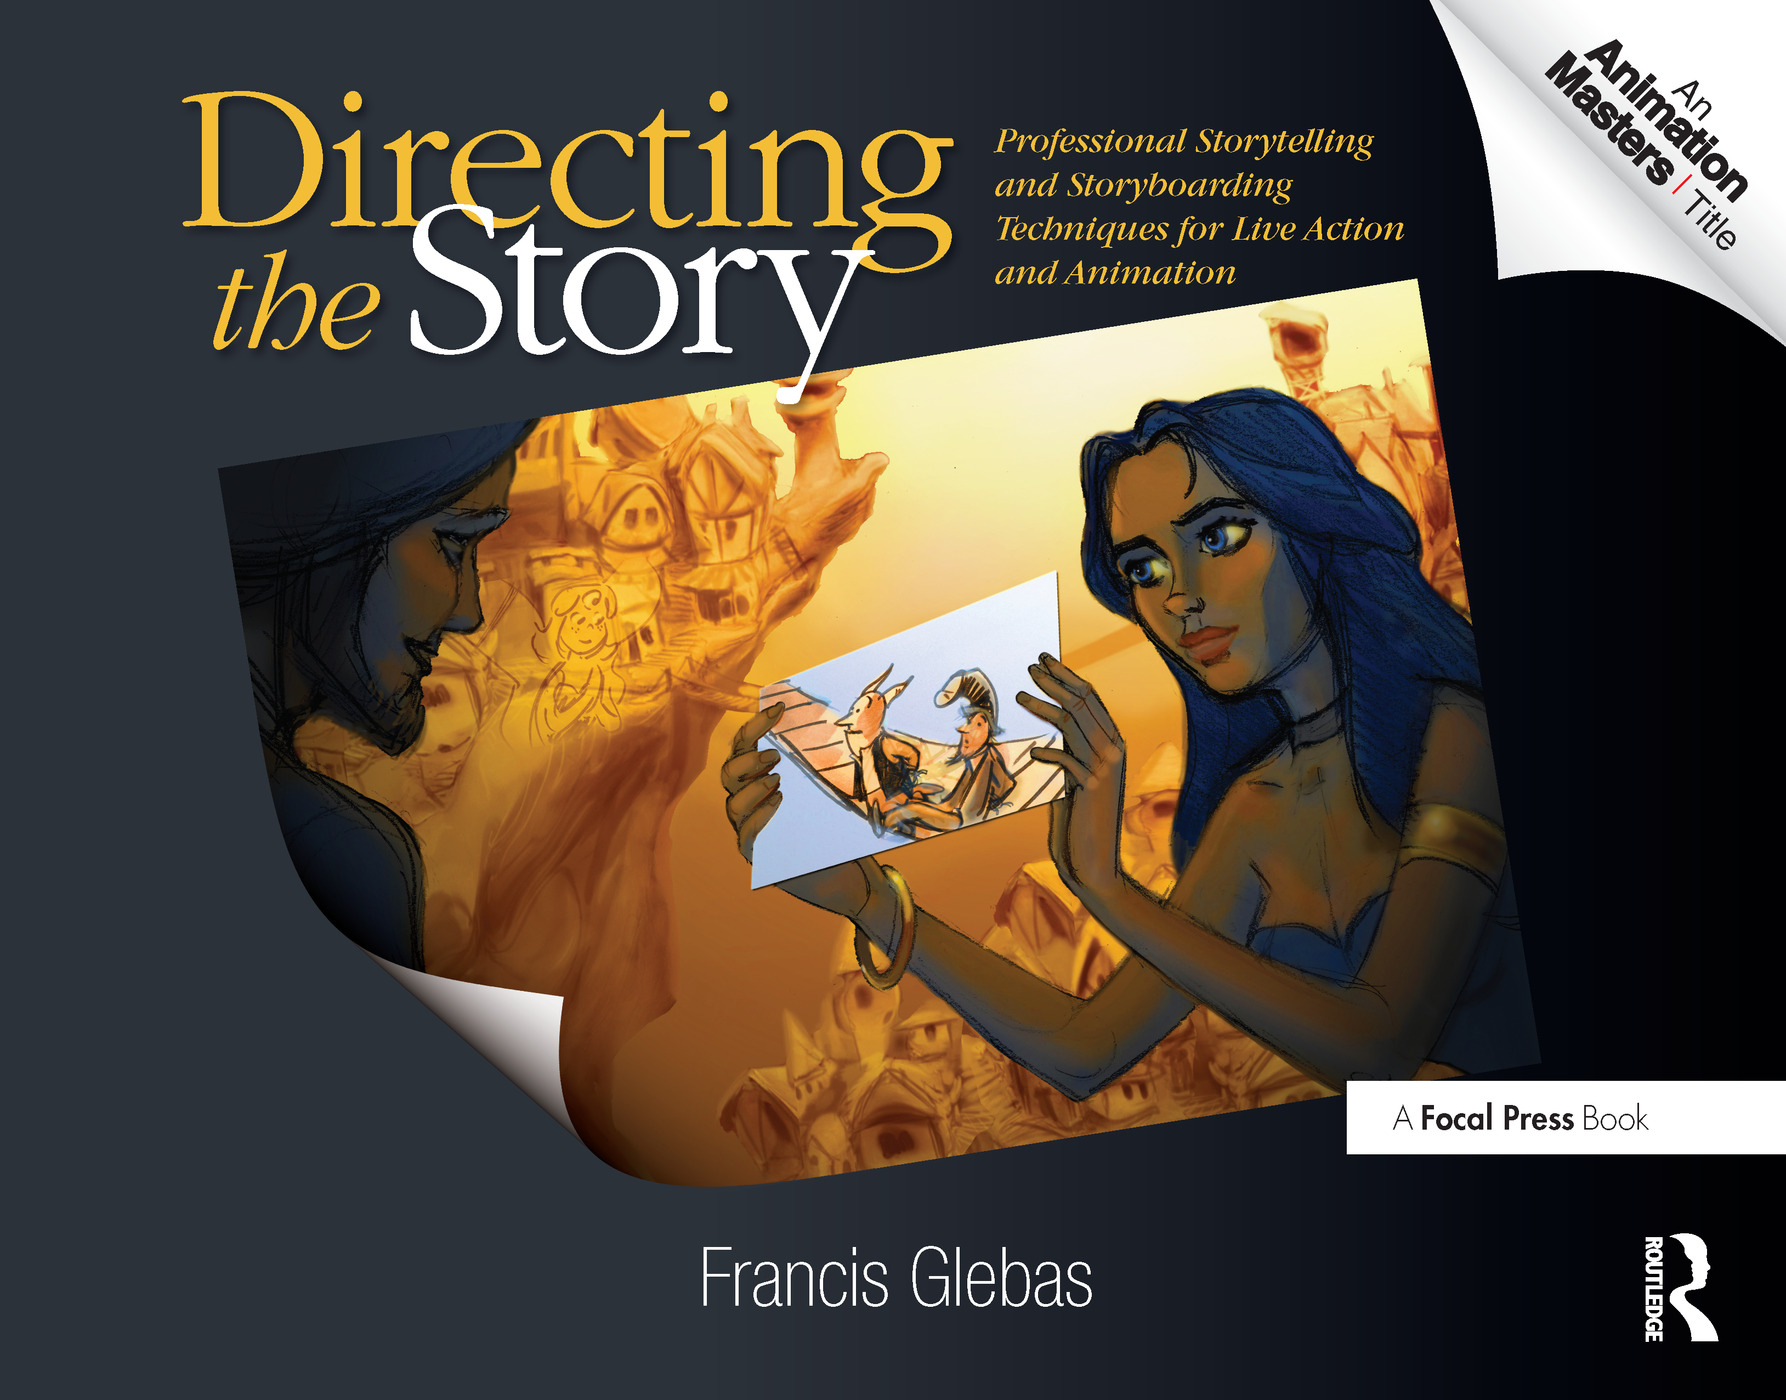 Directing the Story: Professional Storytelling and Storyboarding Techniques for Live Action and Animation book cover